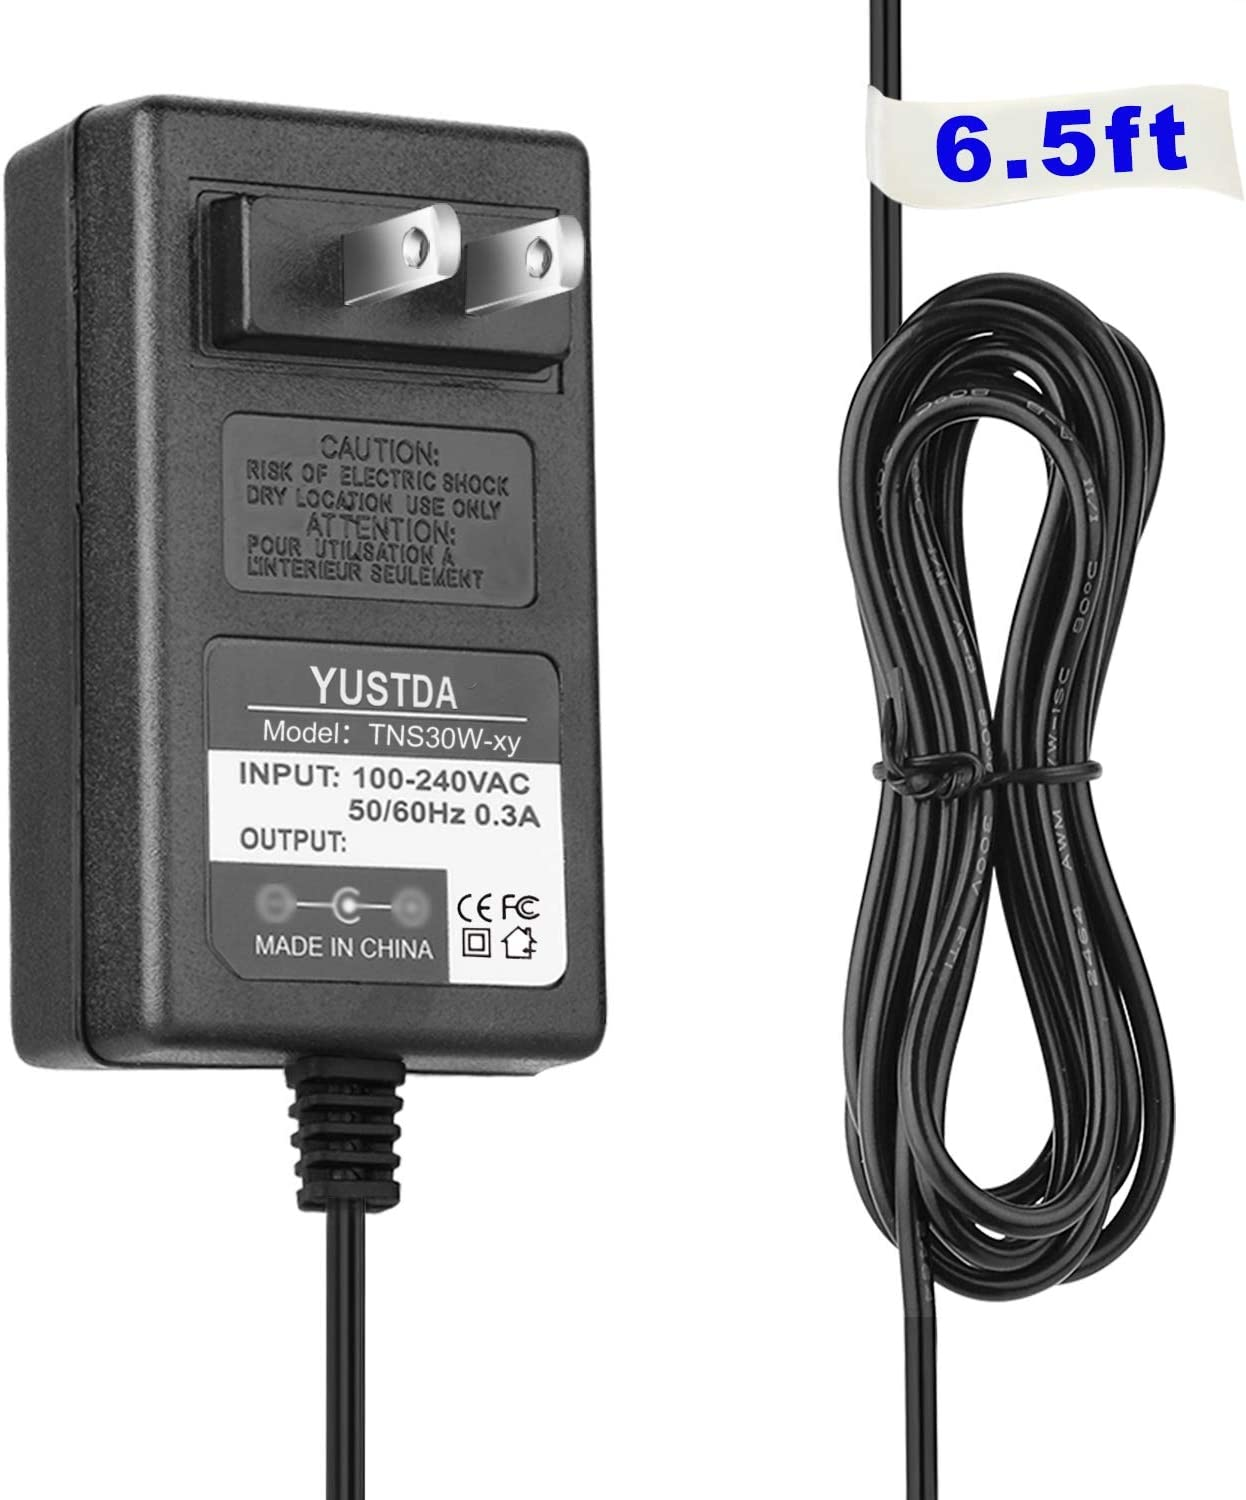 Yustda AC/DC Adapter Replacement for Jumper EZbook MB10 PPN-EZbook 3S Notebook Power Supply Cord Battery Charger Mains PSU